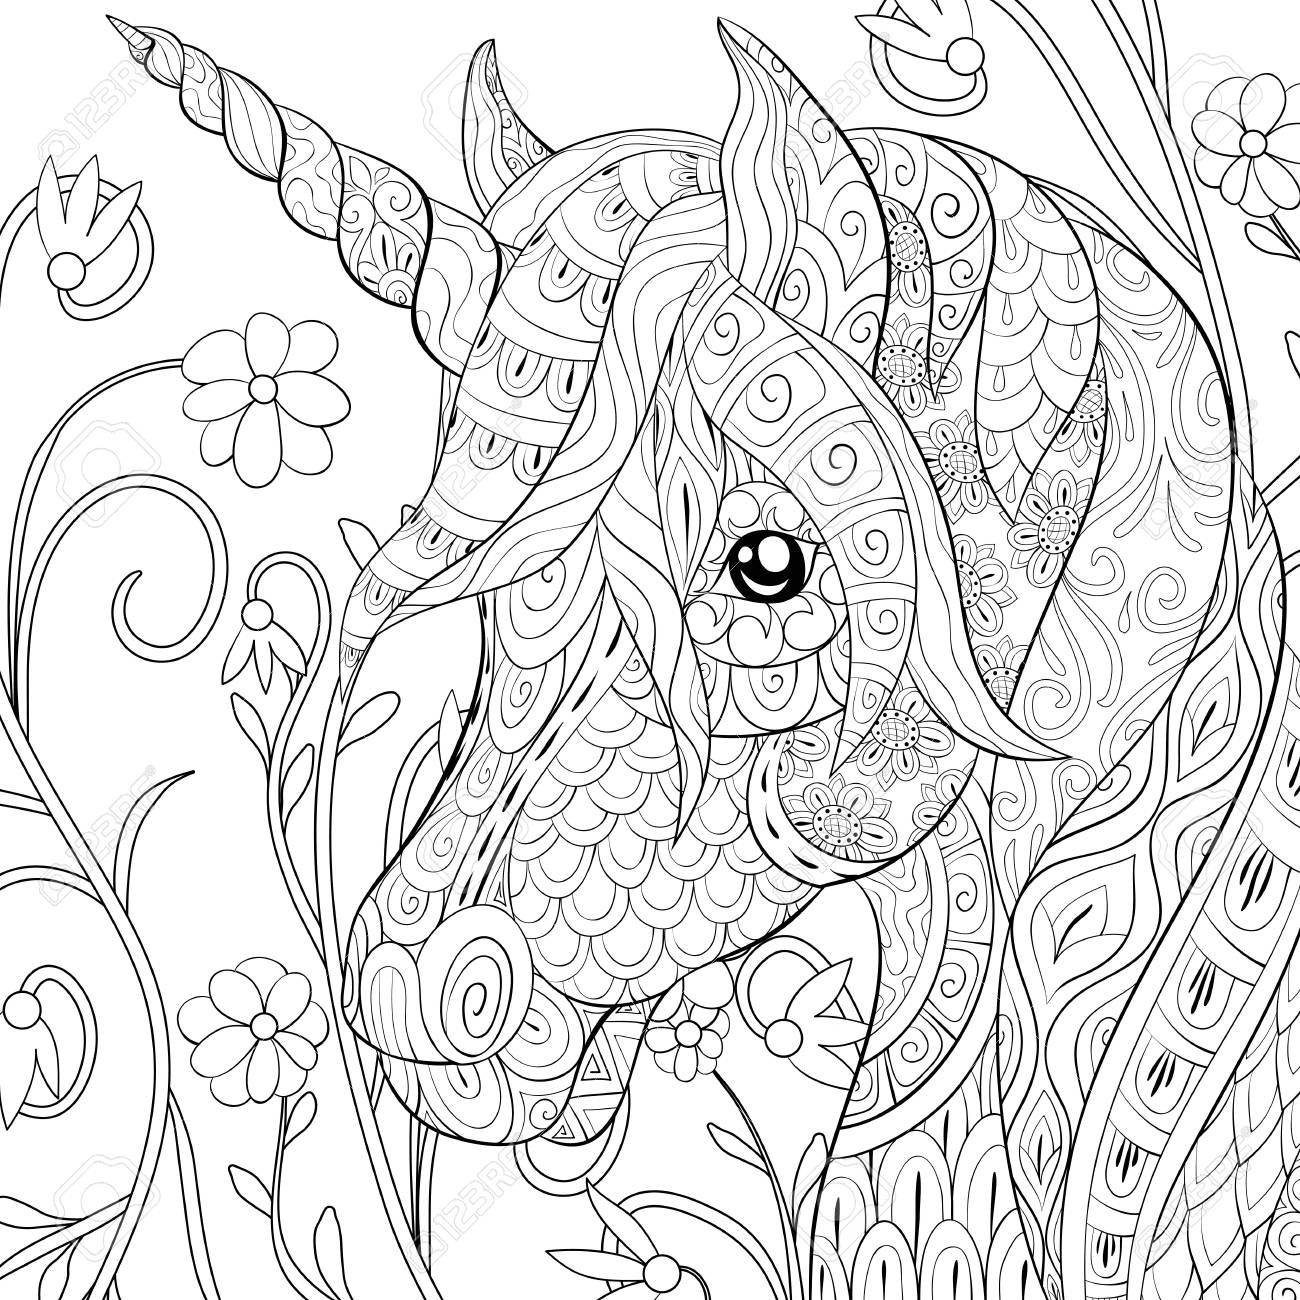 A cute unicorn with ornaments image for relaxing.A coloring book,page for adults.Zen art style illustration for print.Poster design, - 114296372